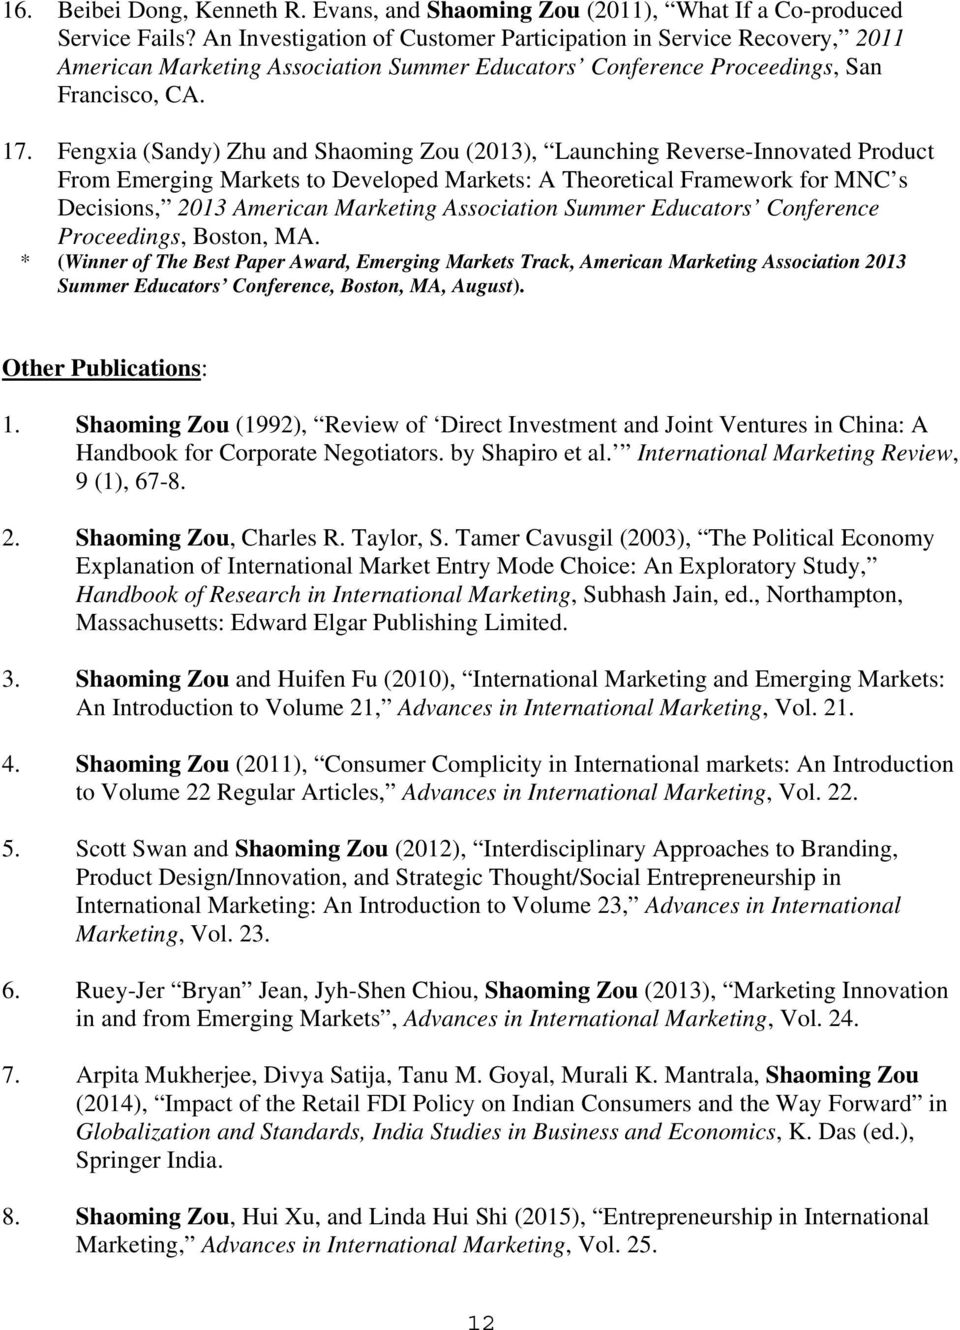 Fengxia (Sandy) Zhu and Shaoming Zou (2013), Launching Reverse-Innovated Product From Emerging Markets to Developed Markets: A Theoretical Framework for MNC s Decisions, 2013 American Marketing